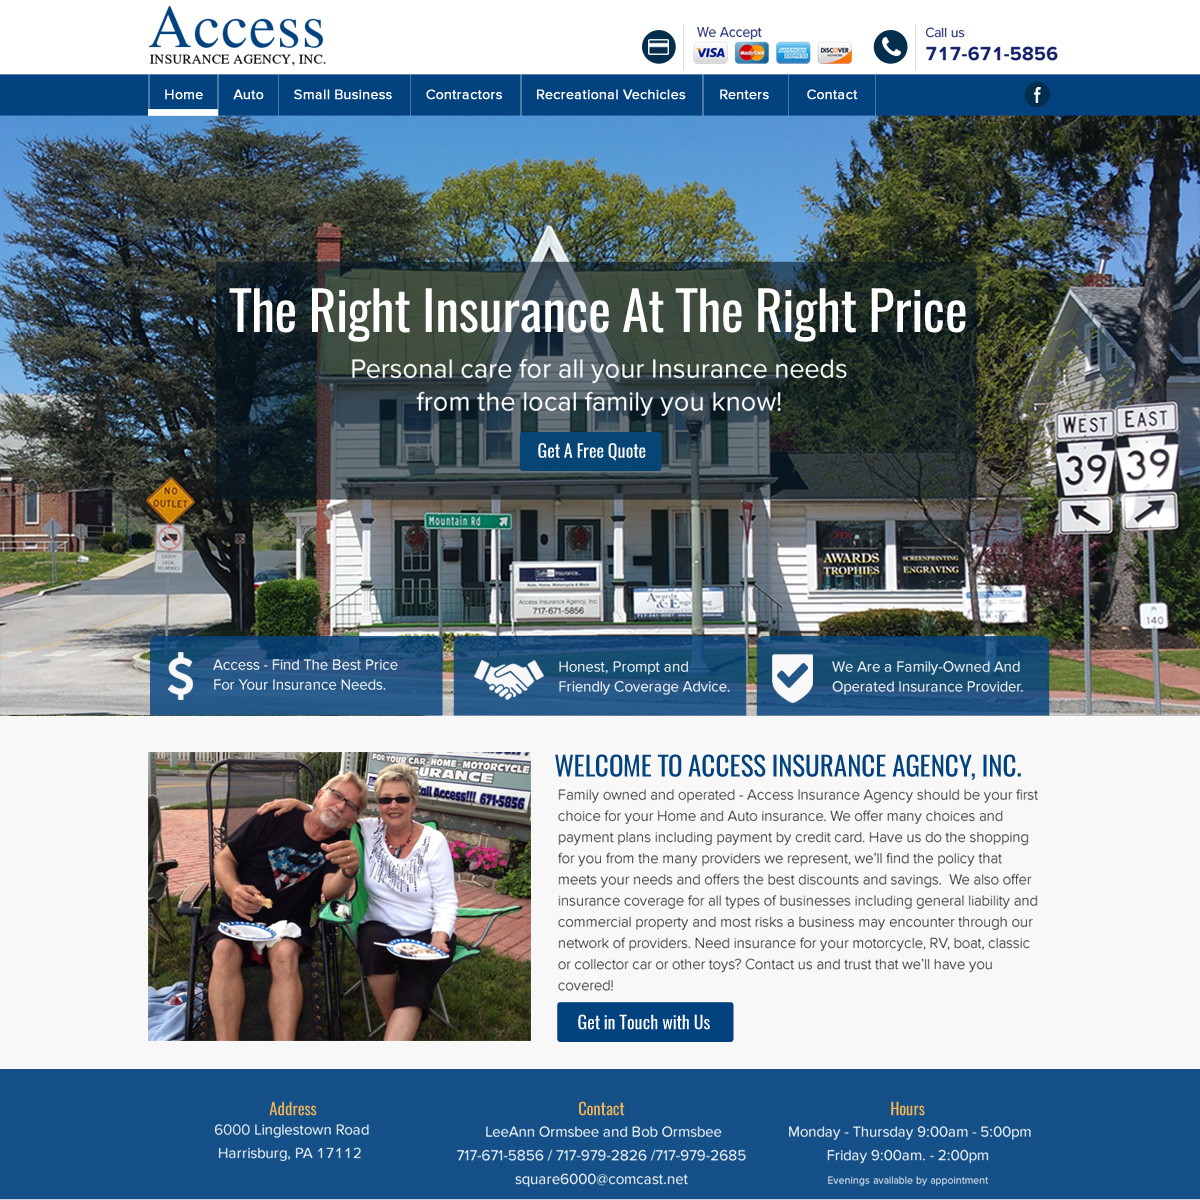 Access Insurance - Insurance company website design